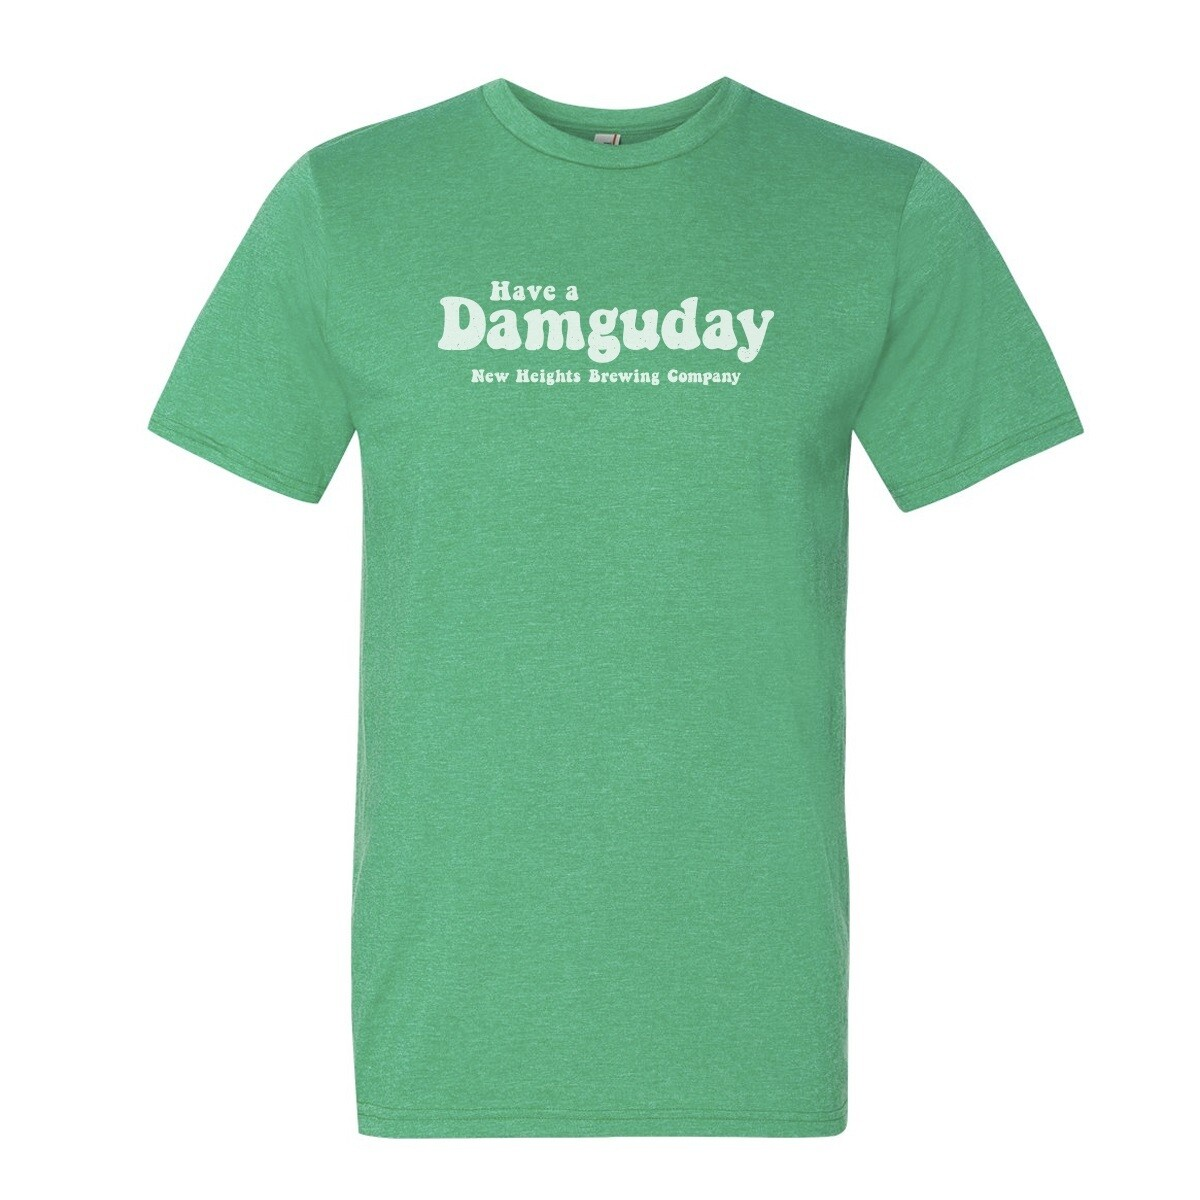 Have a Damguday  - Select Heather Blue or Heather Green